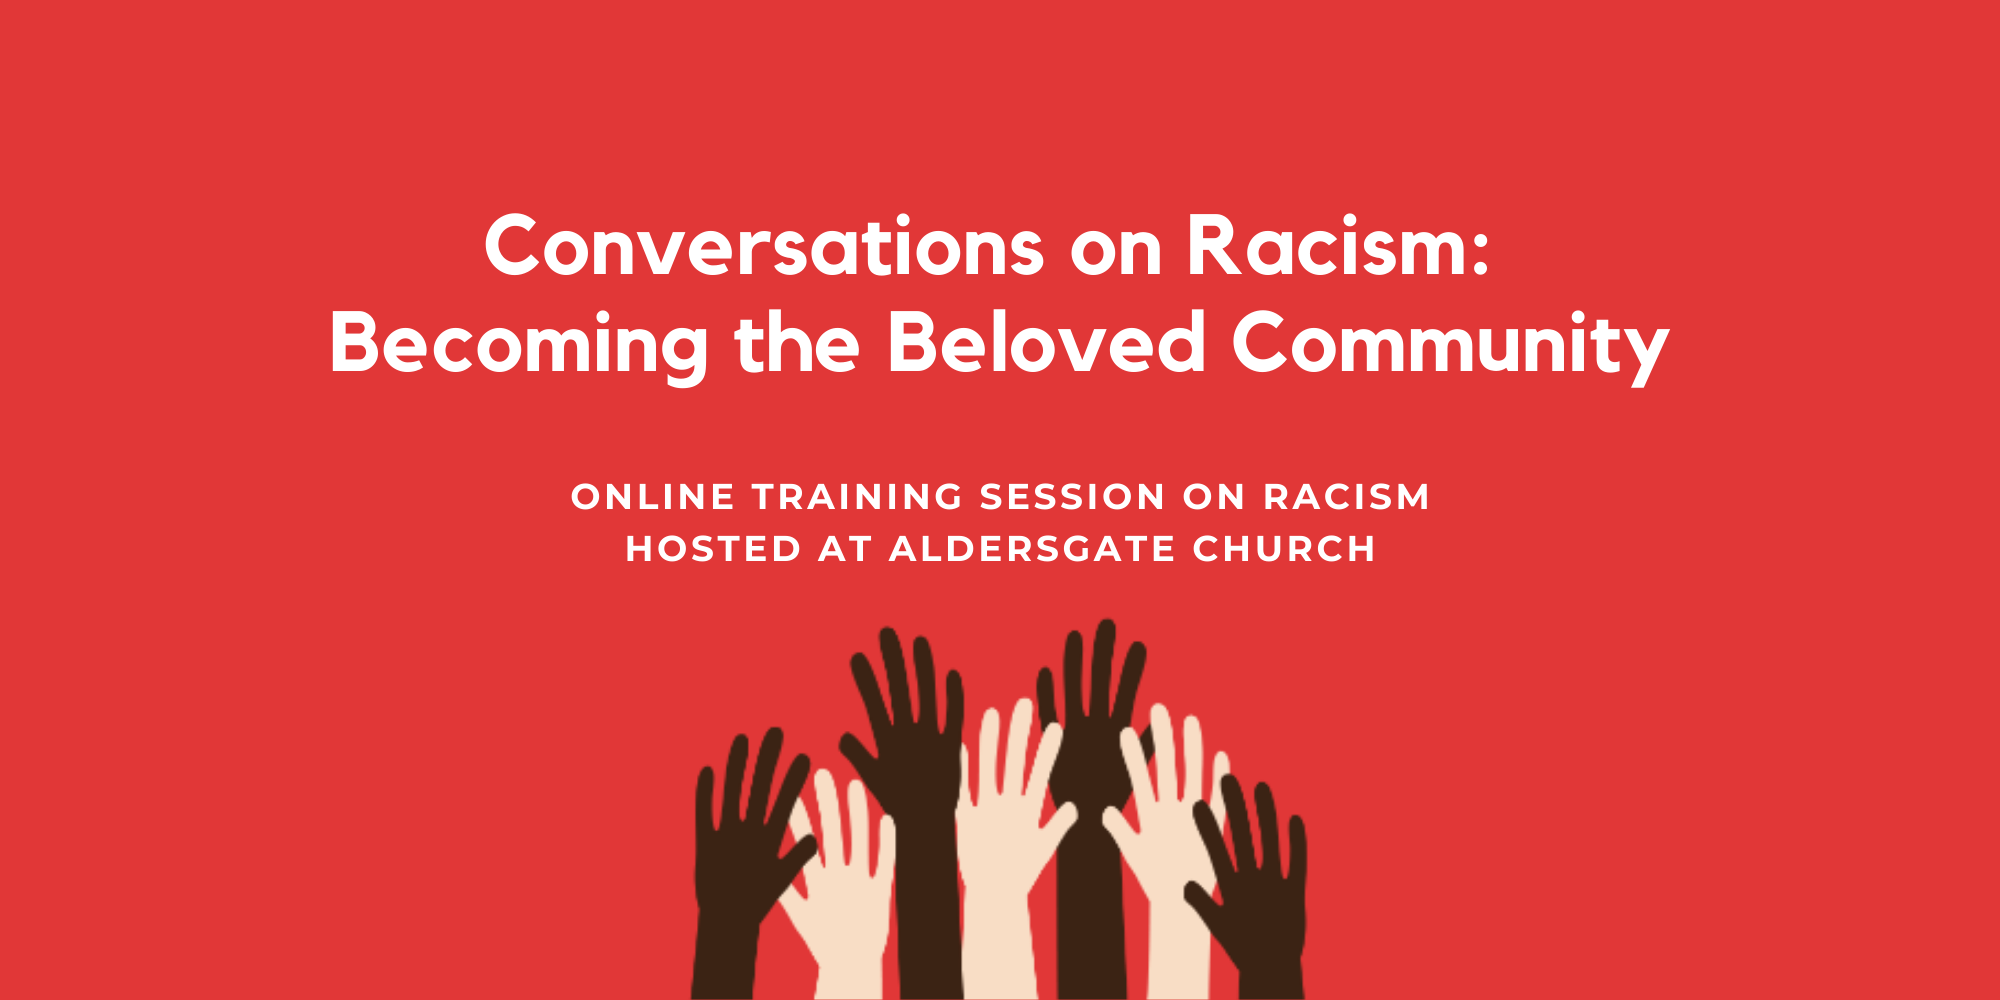 Conversations on Racism: Becoming the Beloved Community